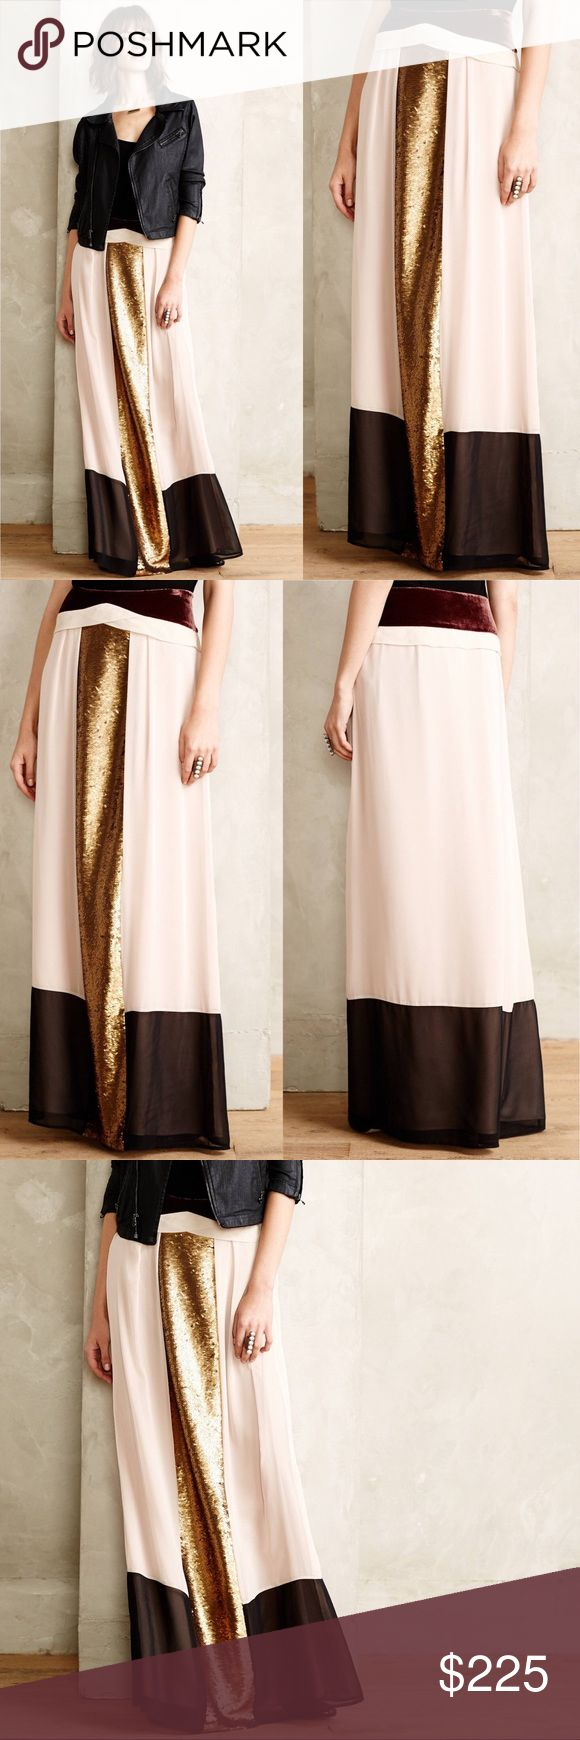 Anthropologie Intropia Sirena Maxi Skirt gorgeous work of art! high end designer hoss intropia designed this stunning skirt with beautiful gold matte sequins and velvet touches for an overall divine effect!   says size 40 which i think corresponds to an 8/10. Skirts Maxi